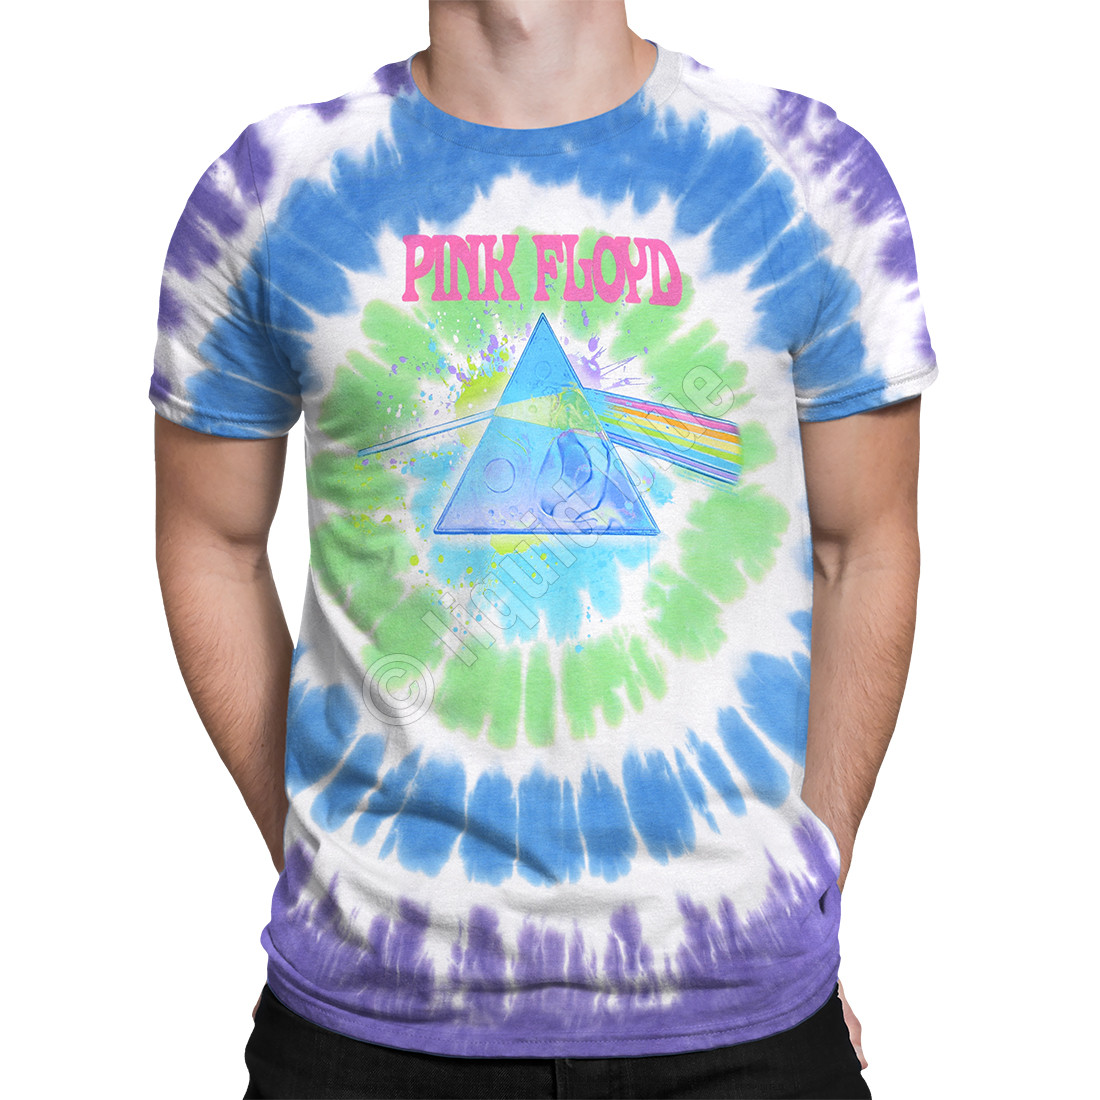 Dark Side Oil Paint Tie-Dye T-Shirt